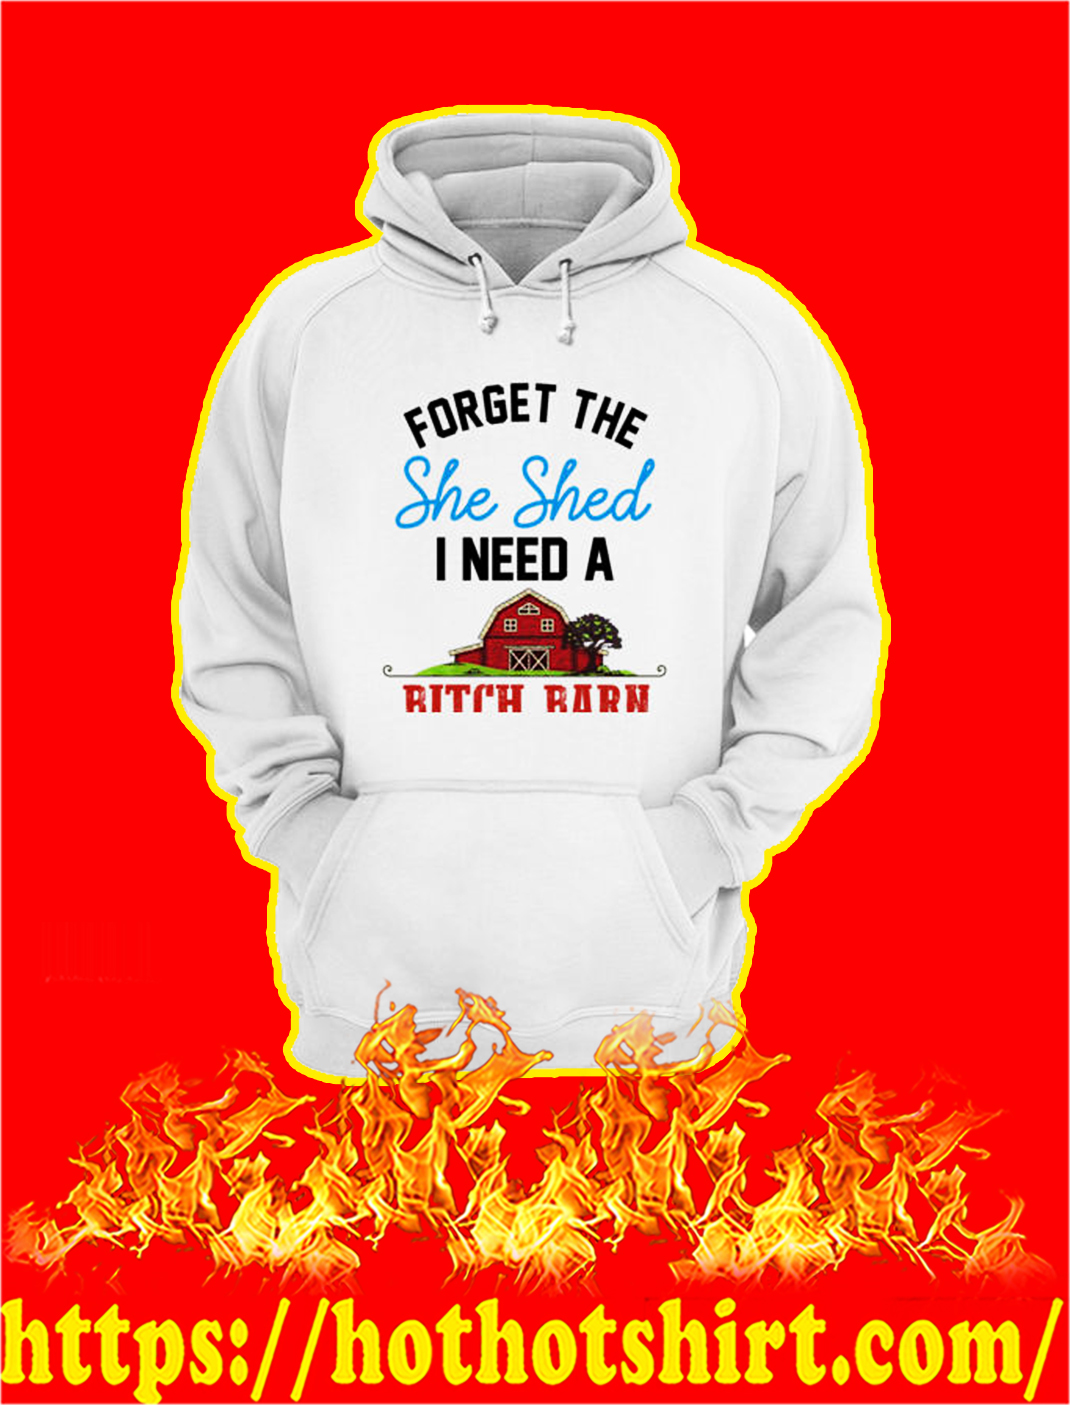 Forget The She Shed I Need A Bitch Barn hoodie